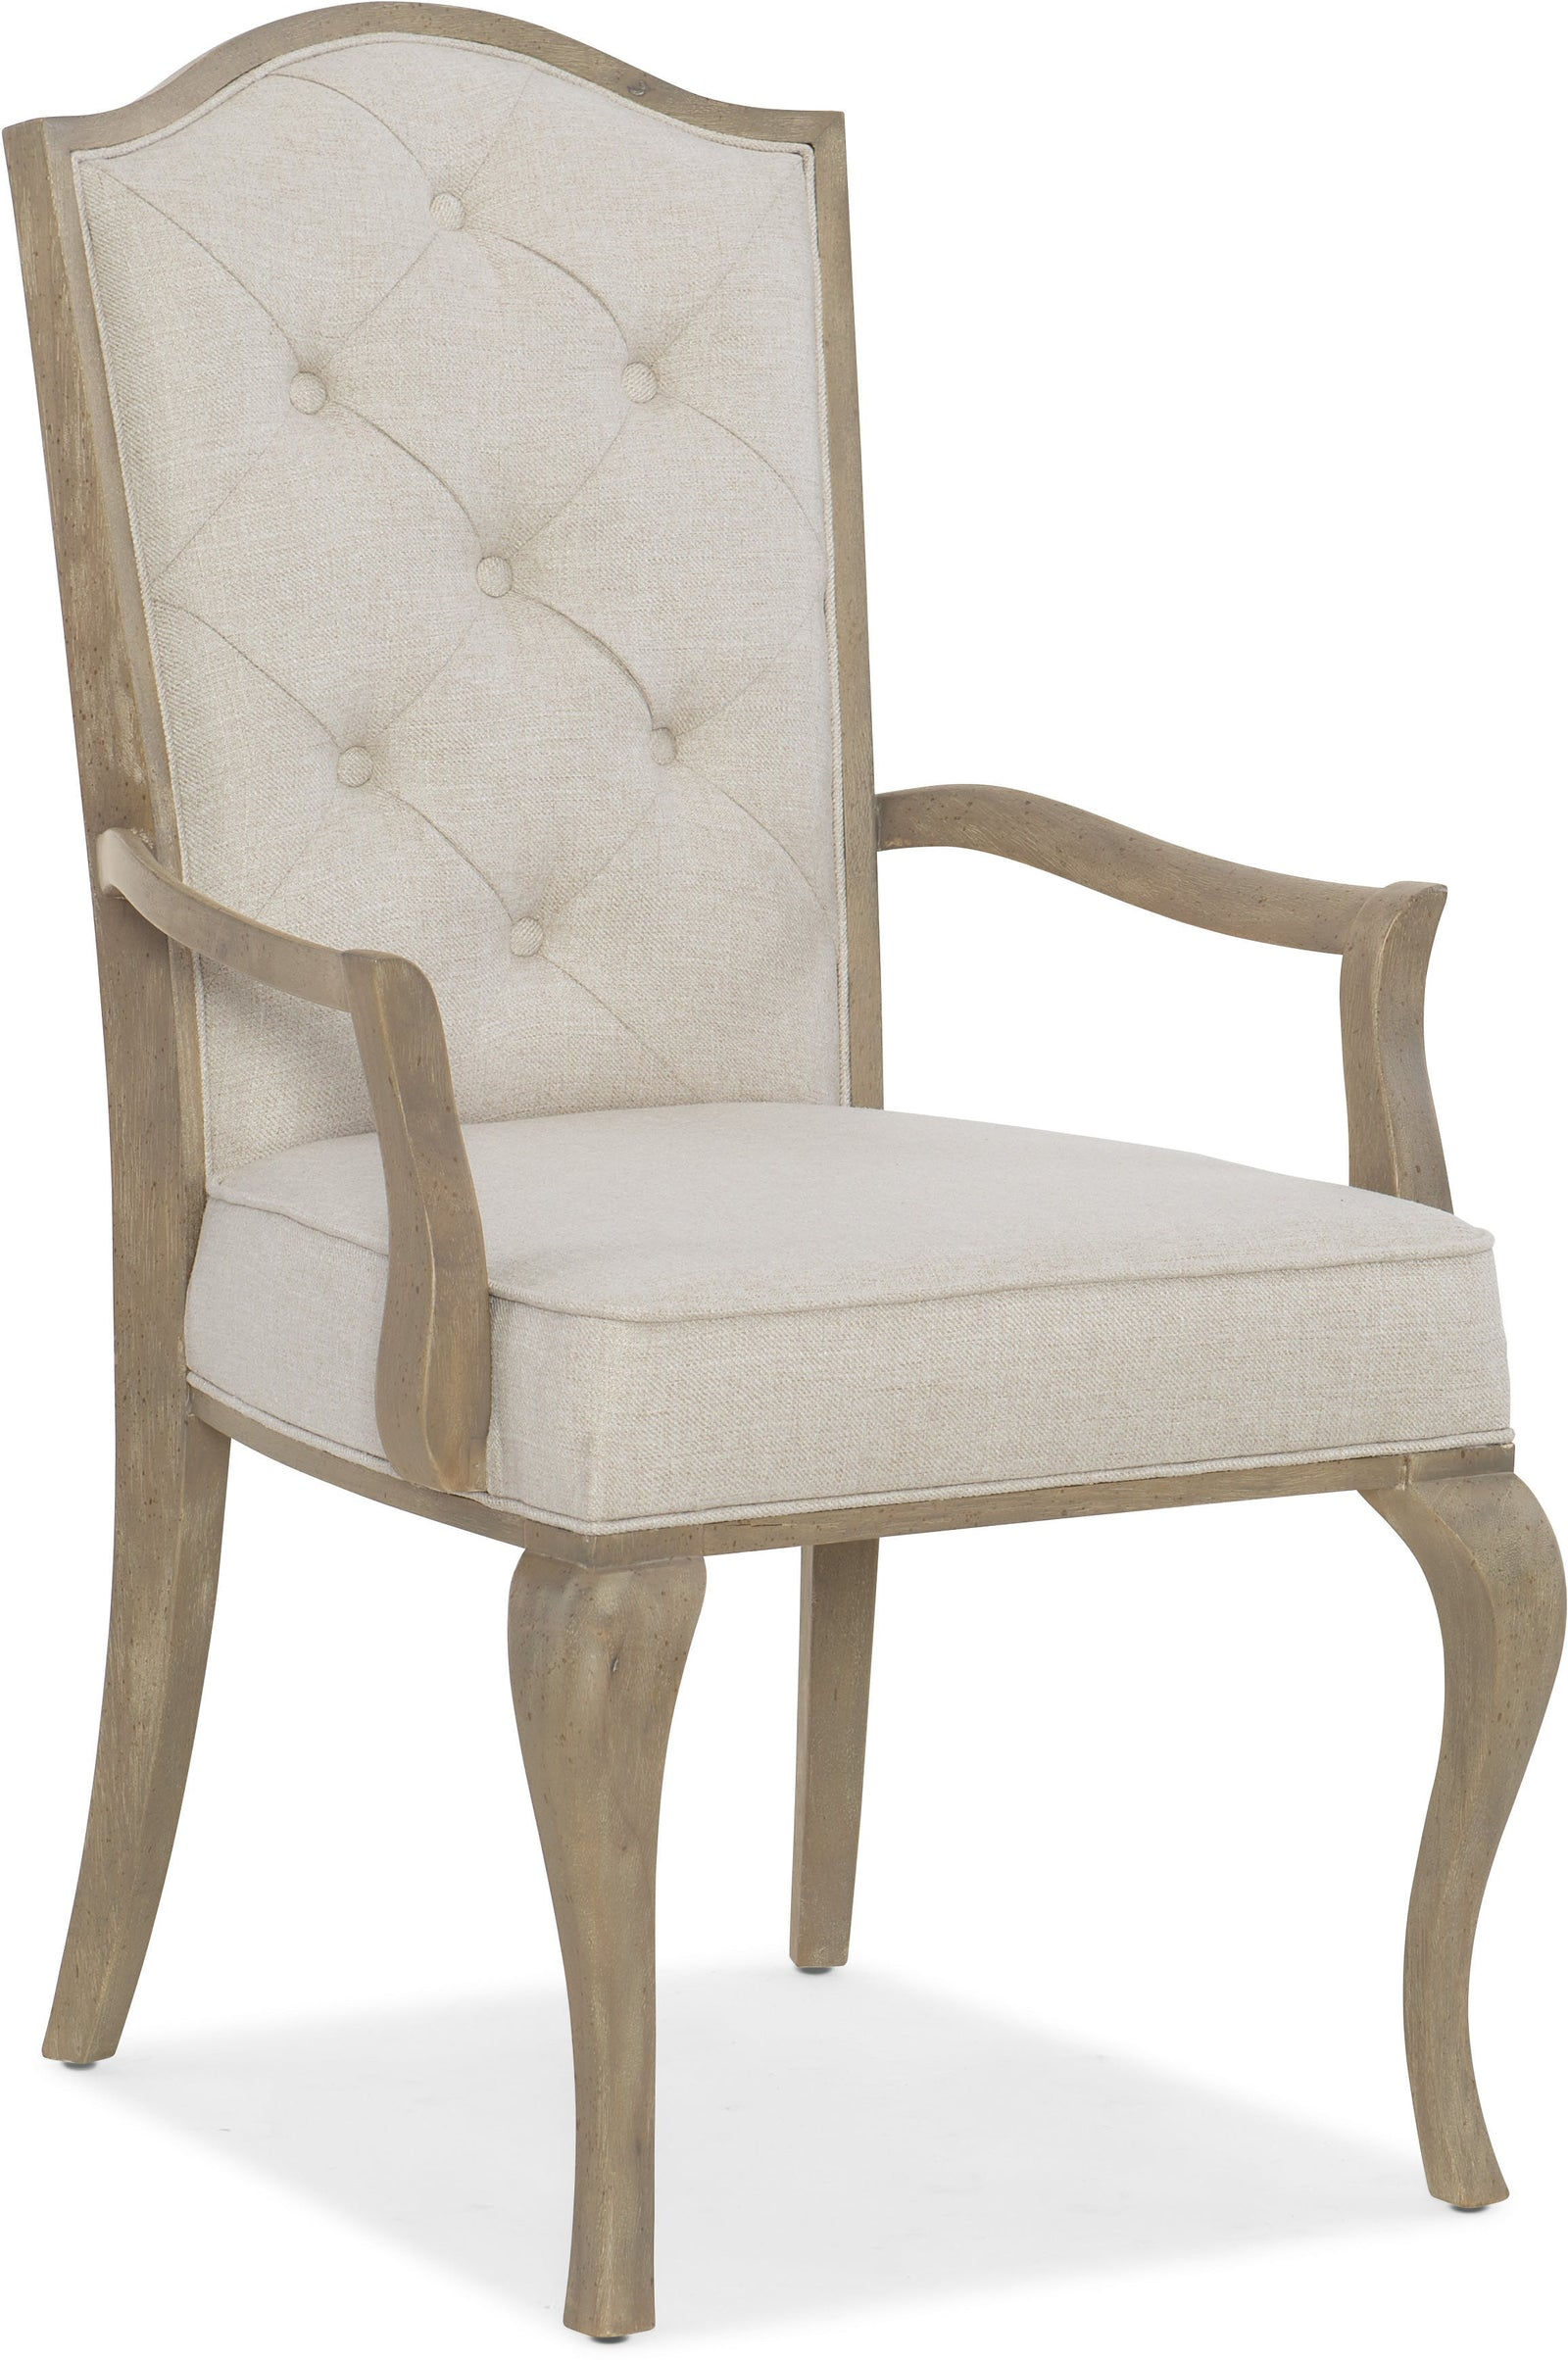 sports shoes a1062 52196 Buy Dining Chairs Online: Exclusive Dining Chairs & Dining ...